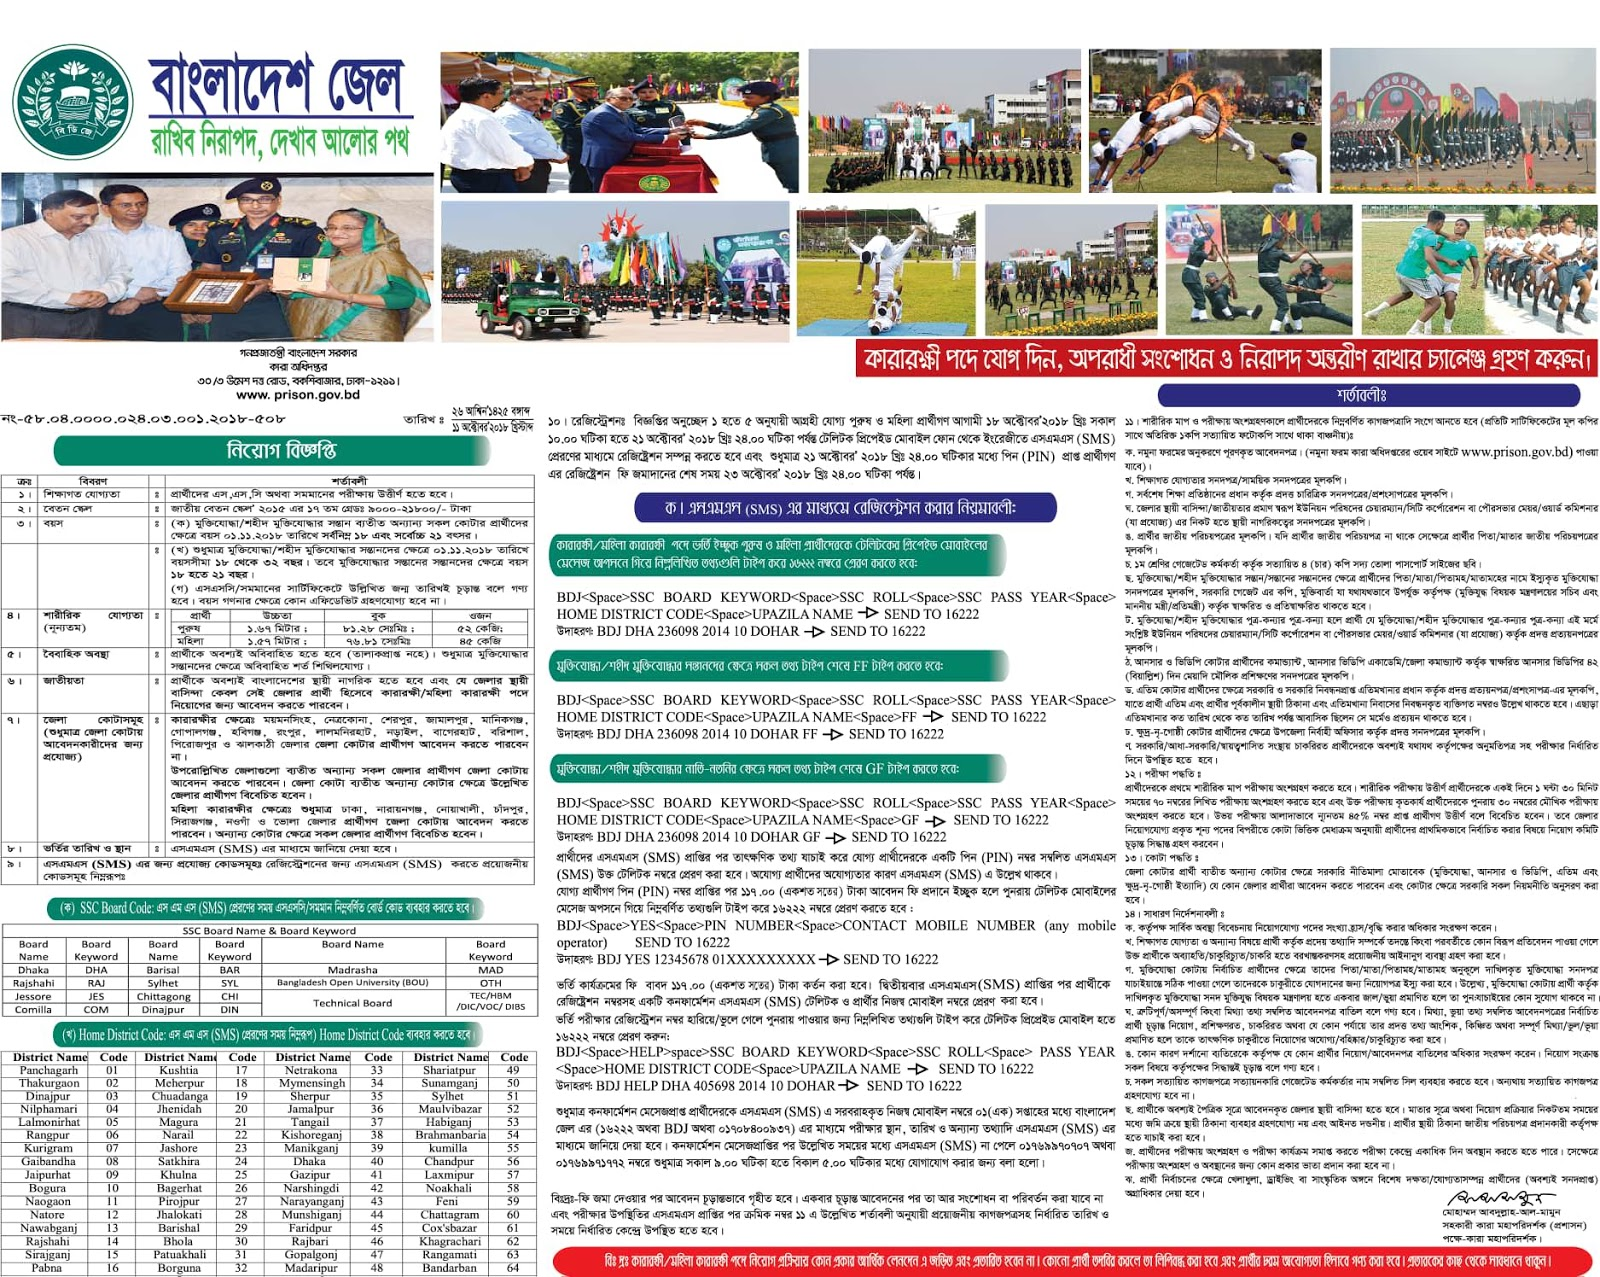 BD Bangladesh Govt. Jail Police Job Circular 2018 | EDU BD NEWS